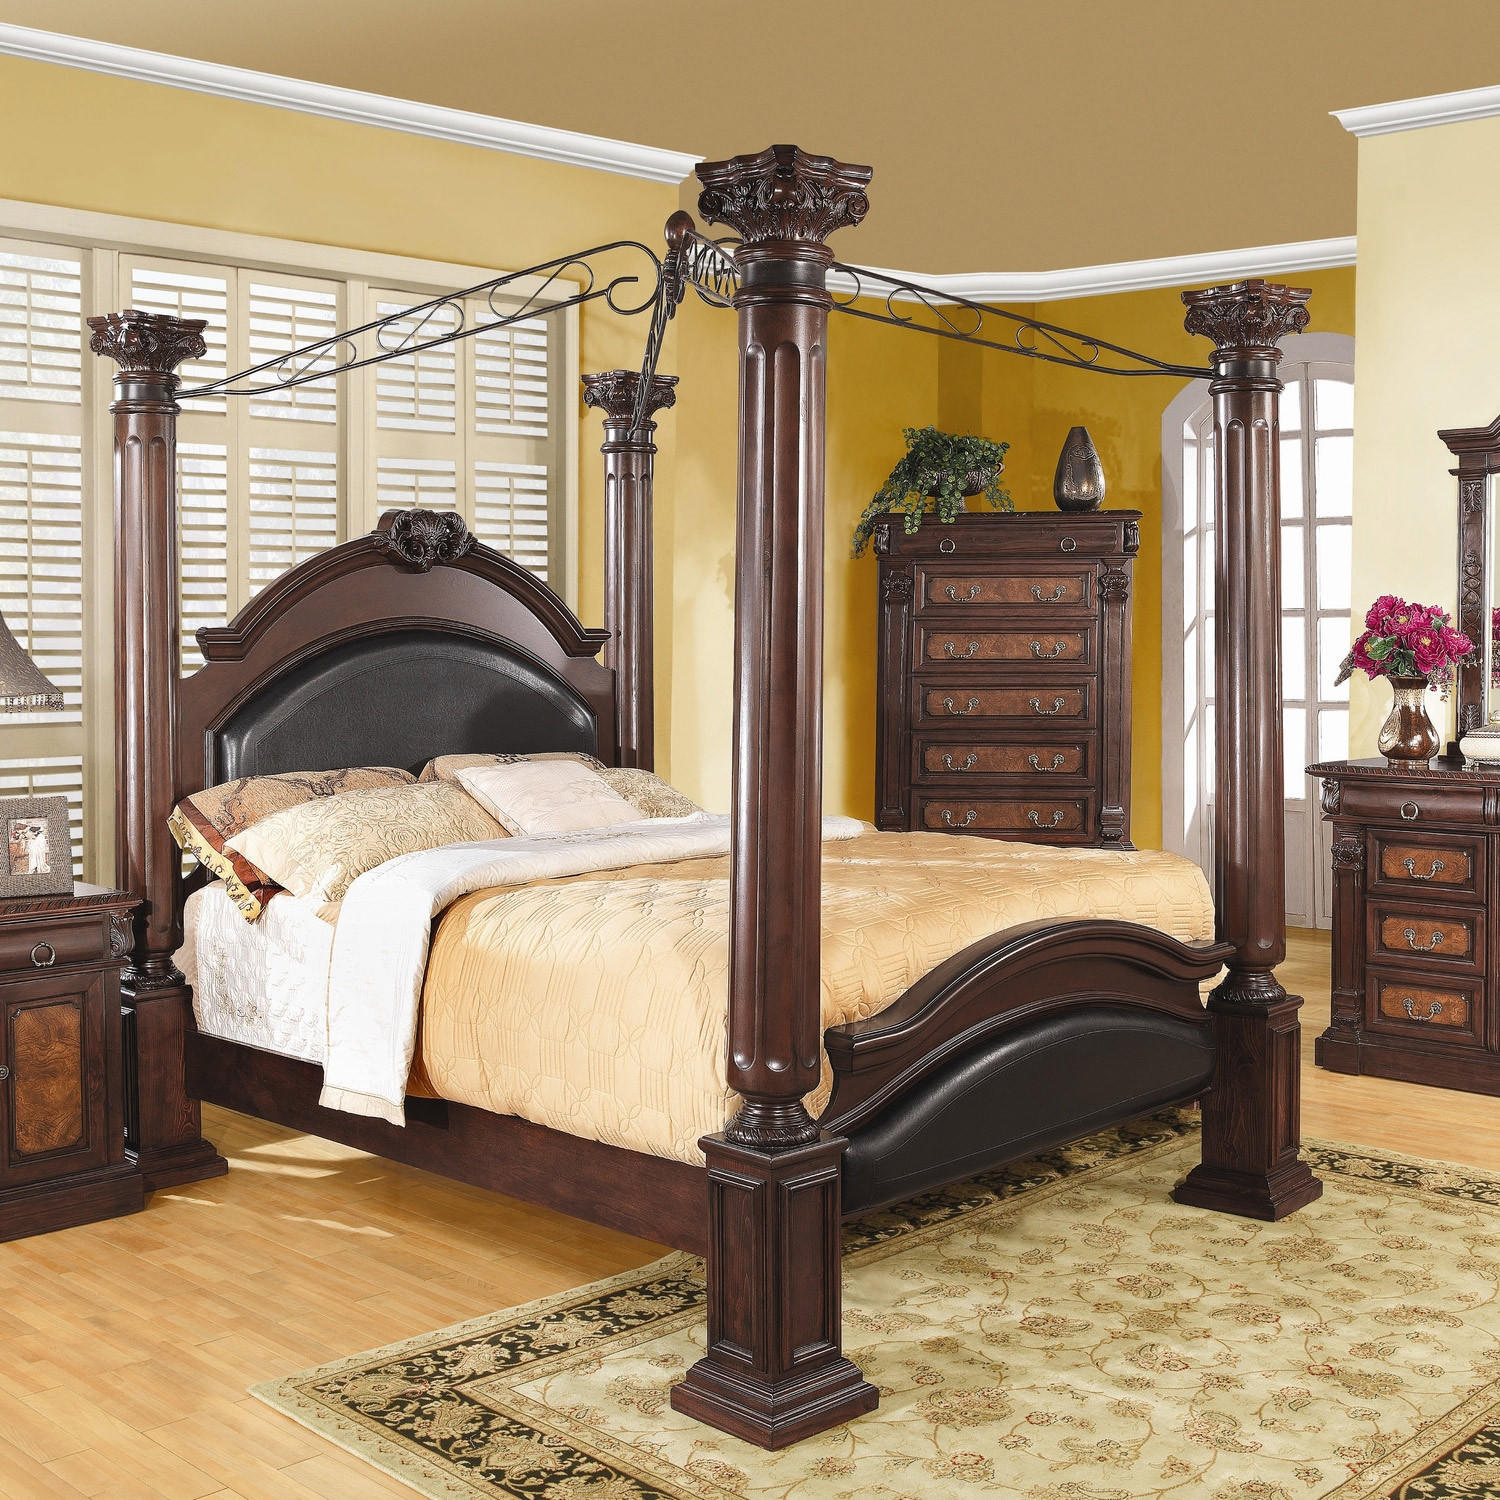 King Size 4 Poster Canopy Bed with Large from Hearts Attic 354ba13b7e